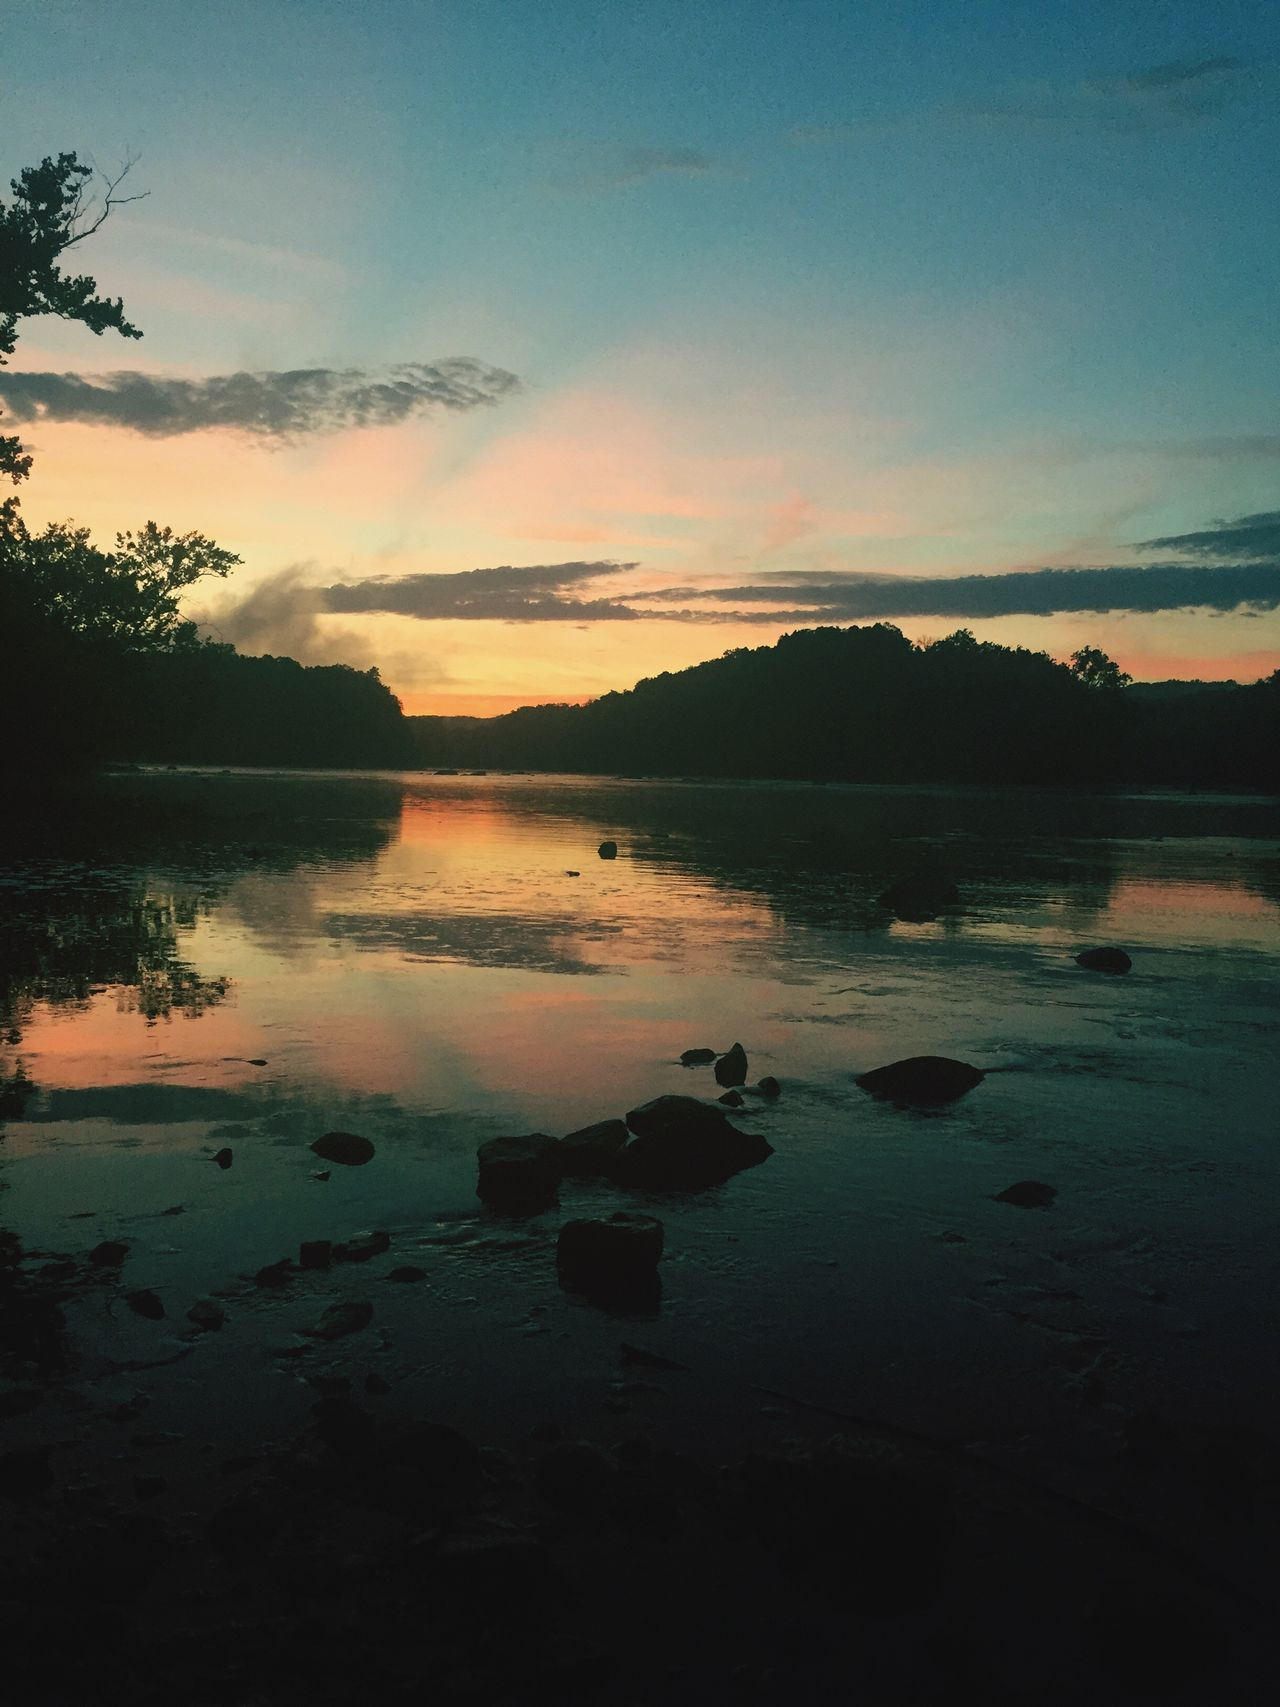 Sunset Water Reflection Nature Scenics Tranquil Scene Tranquility Beauty In Nature Outdoors